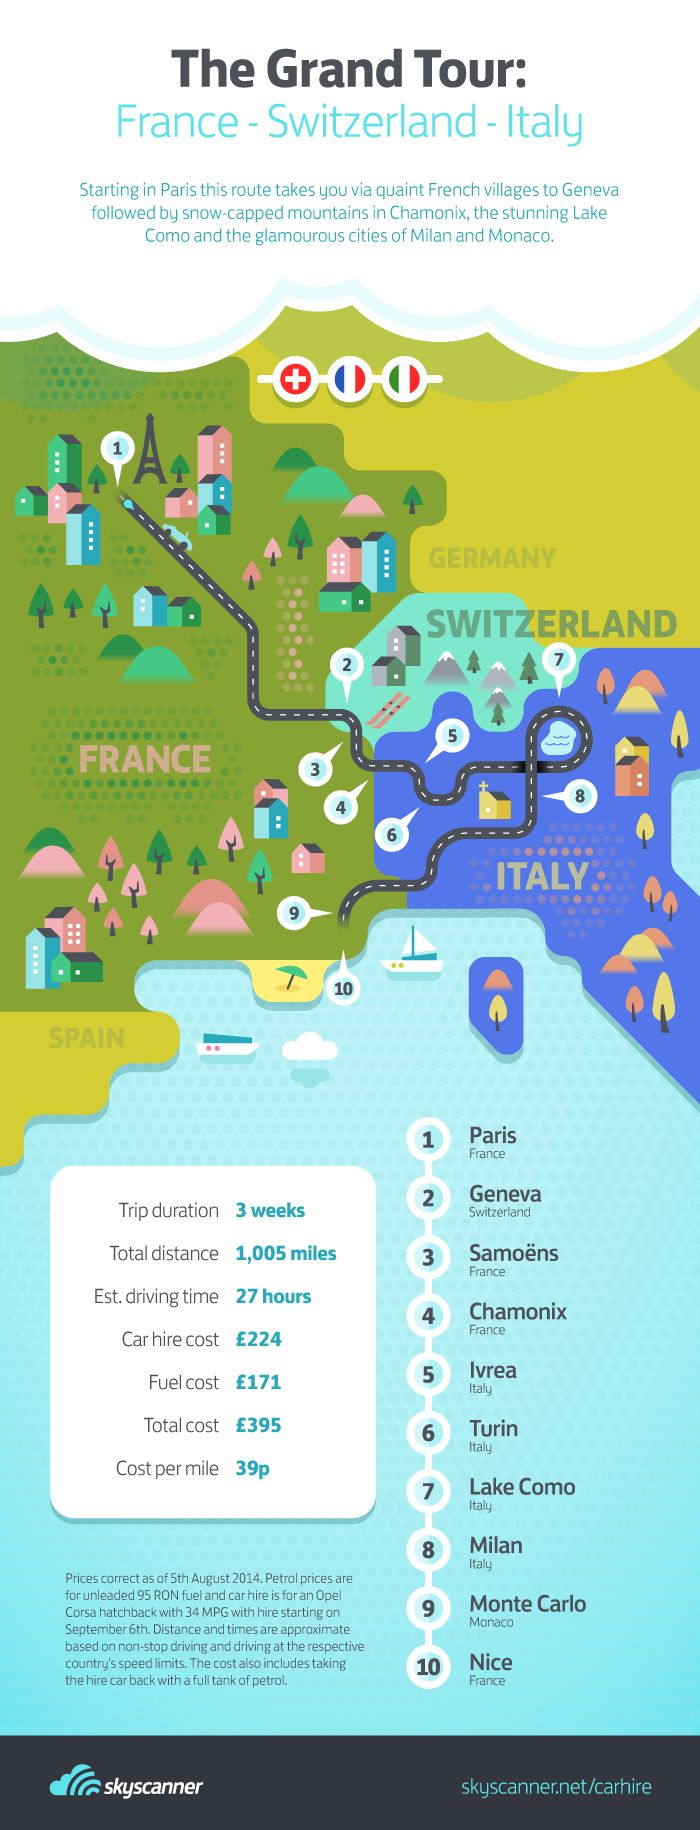 As part of our summer road-trip season we have researched some of the best trips you can do by car. Here's our guide to one of Europe's ultimate road-trips: the 'Grand Tour', featuring France, Switzerland and Italy. This trip takes in picture-postcard French villages, snow-covered alpine mountains and the glitz and glamour of Monaco and Milan!